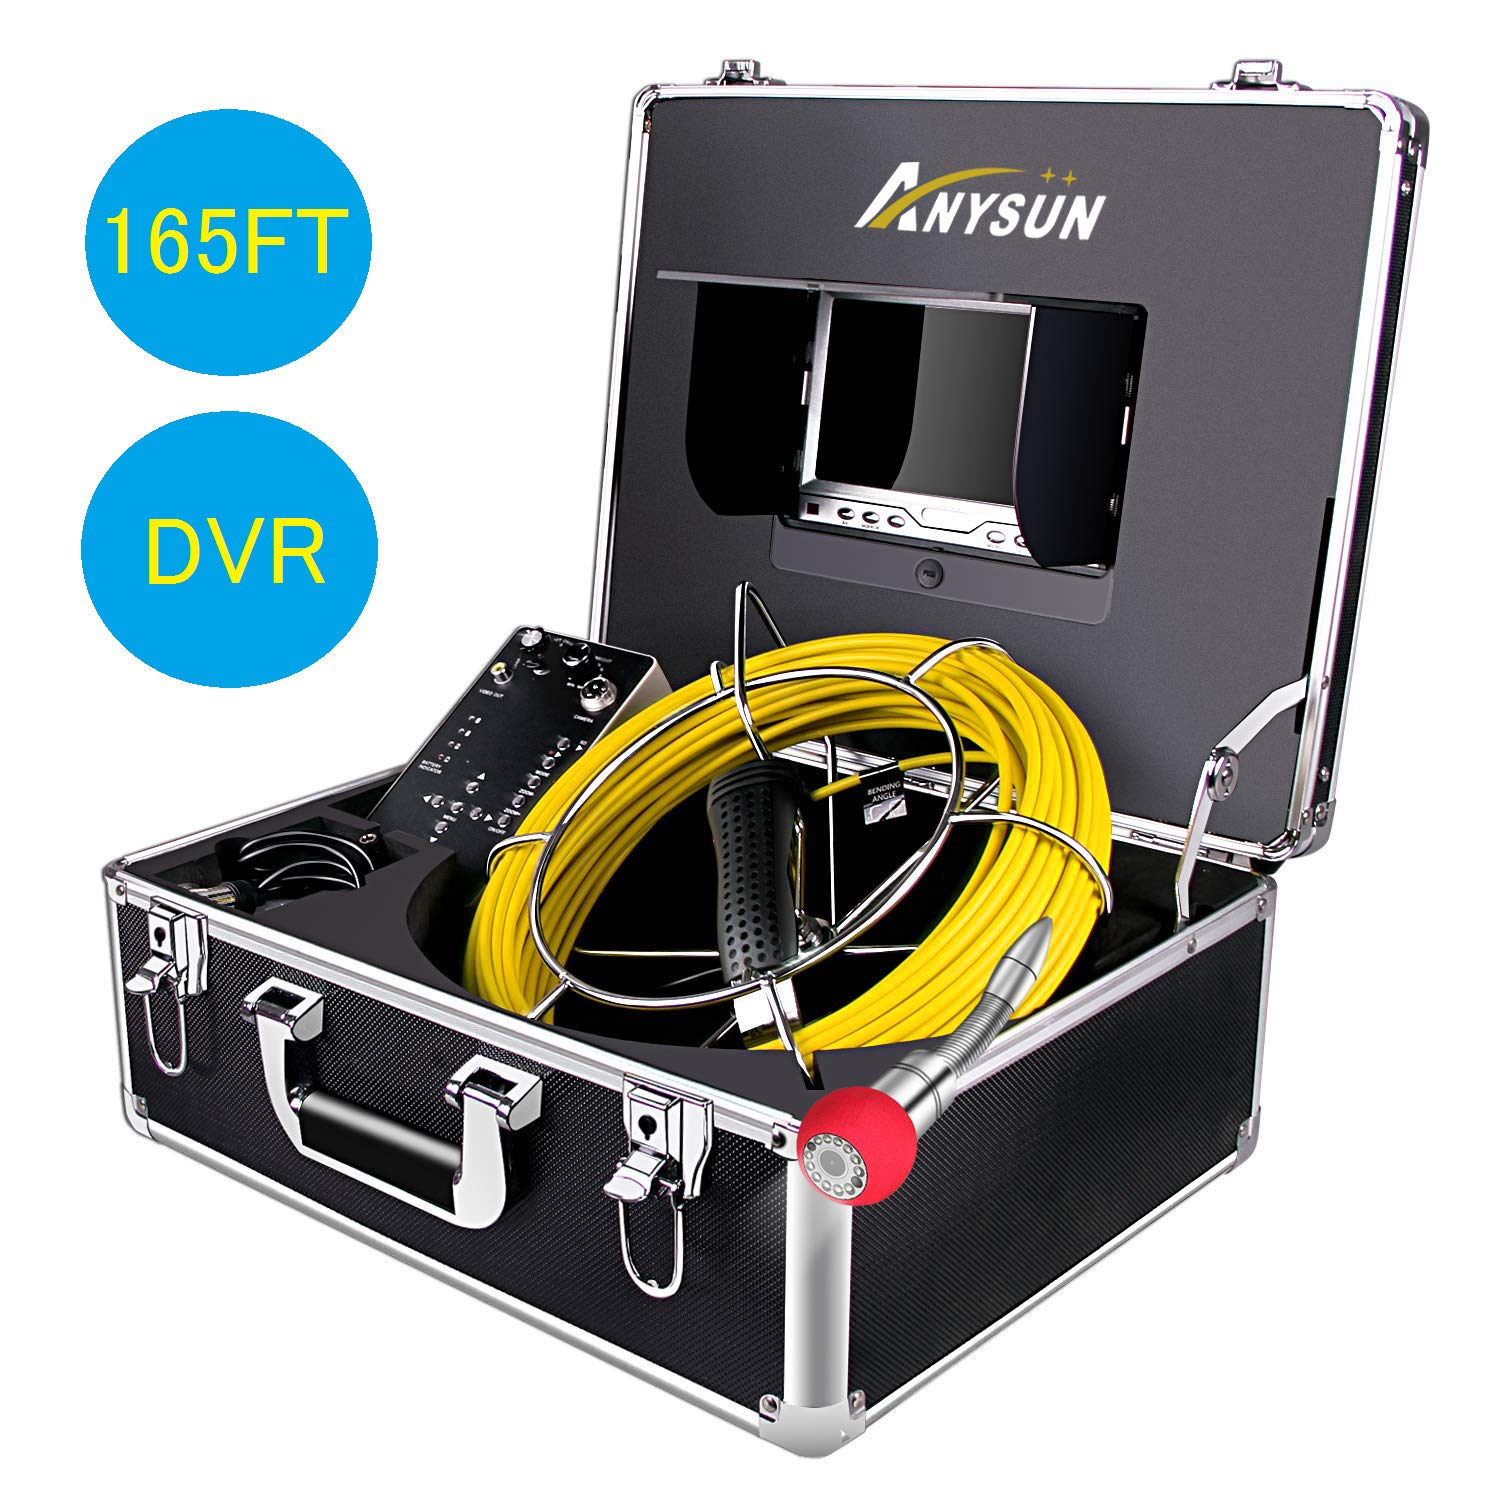 Anysun 20M Pipeline Drain Sewer Industrial Endoscope Video Plumbing System with IP68 Waterproof with 7 Inch LCD Monitor 1000TVL Sony CCD Pipe Inspection Camera